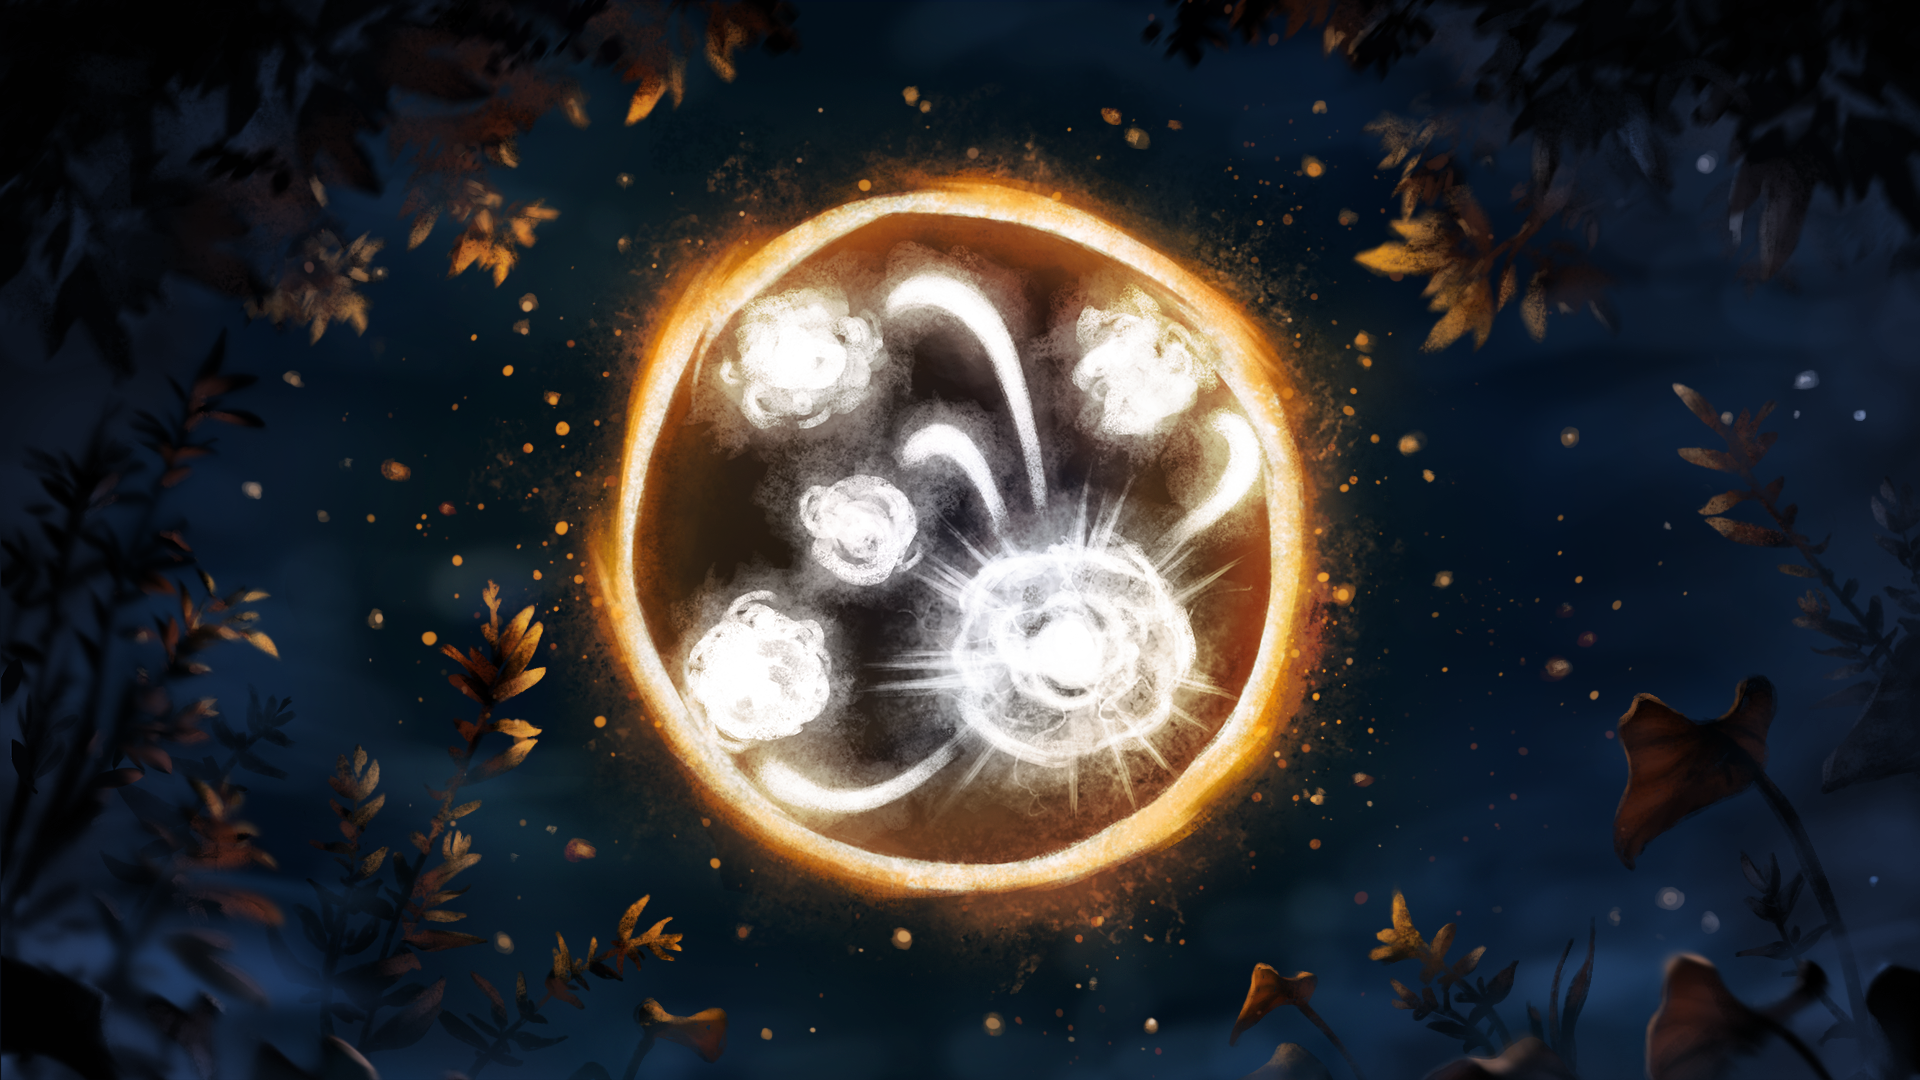 Flame Master achievement for Ori and the Blind Forest on Nintendo Switch